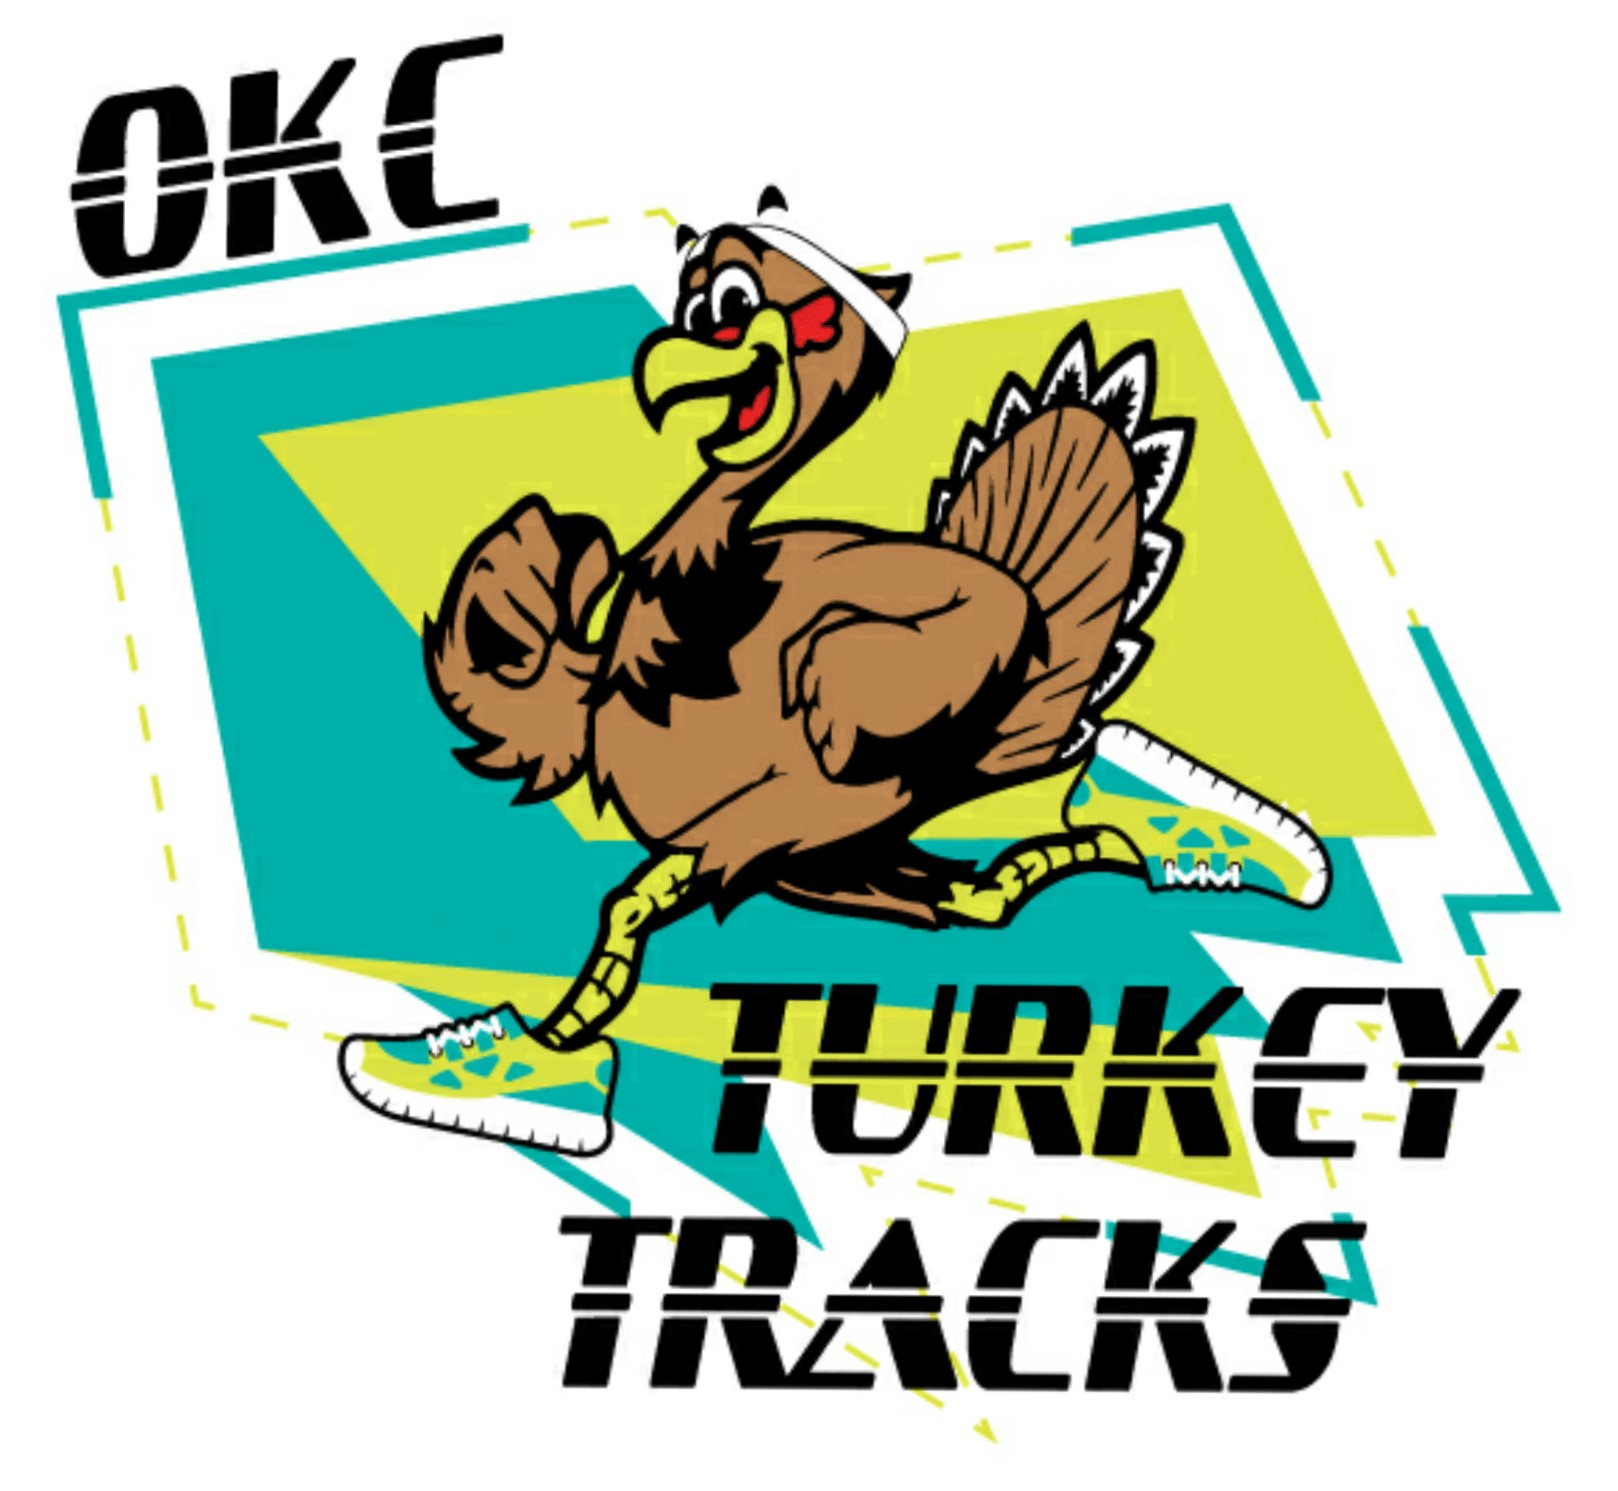 OKC Turkey Tracks